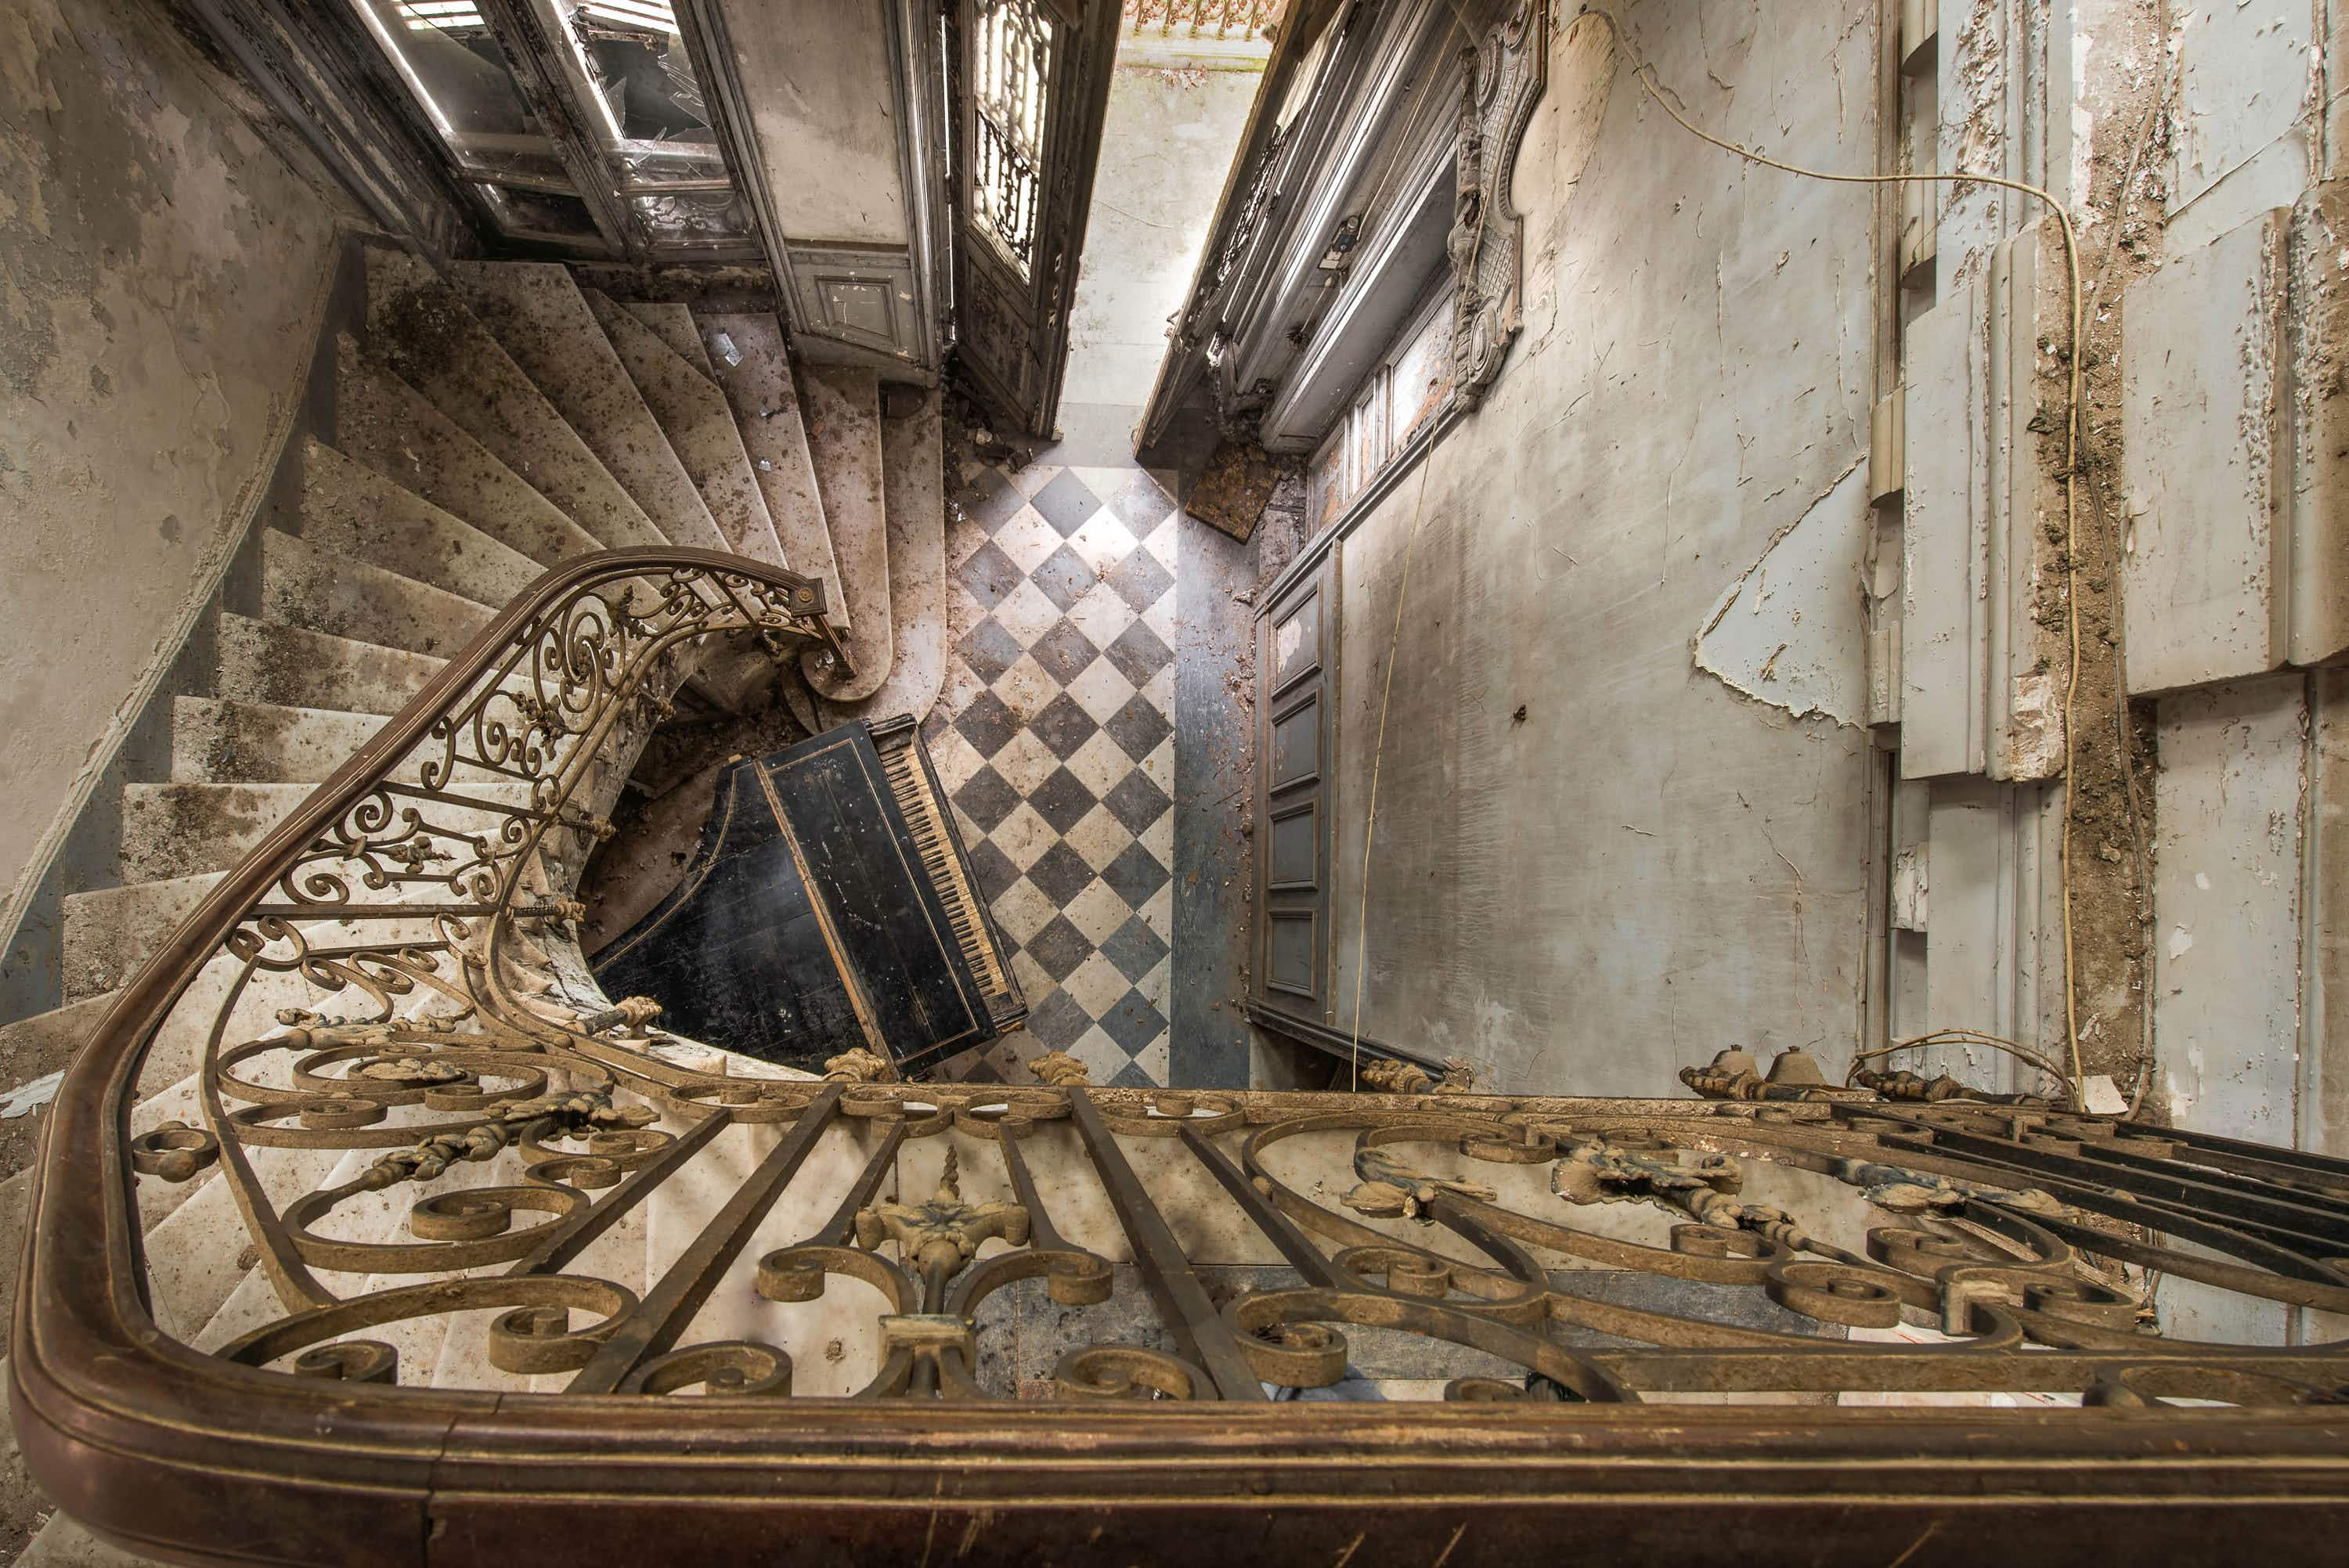 Grand staircases spiralling into decay across Europe beautifully captured in a photo essay